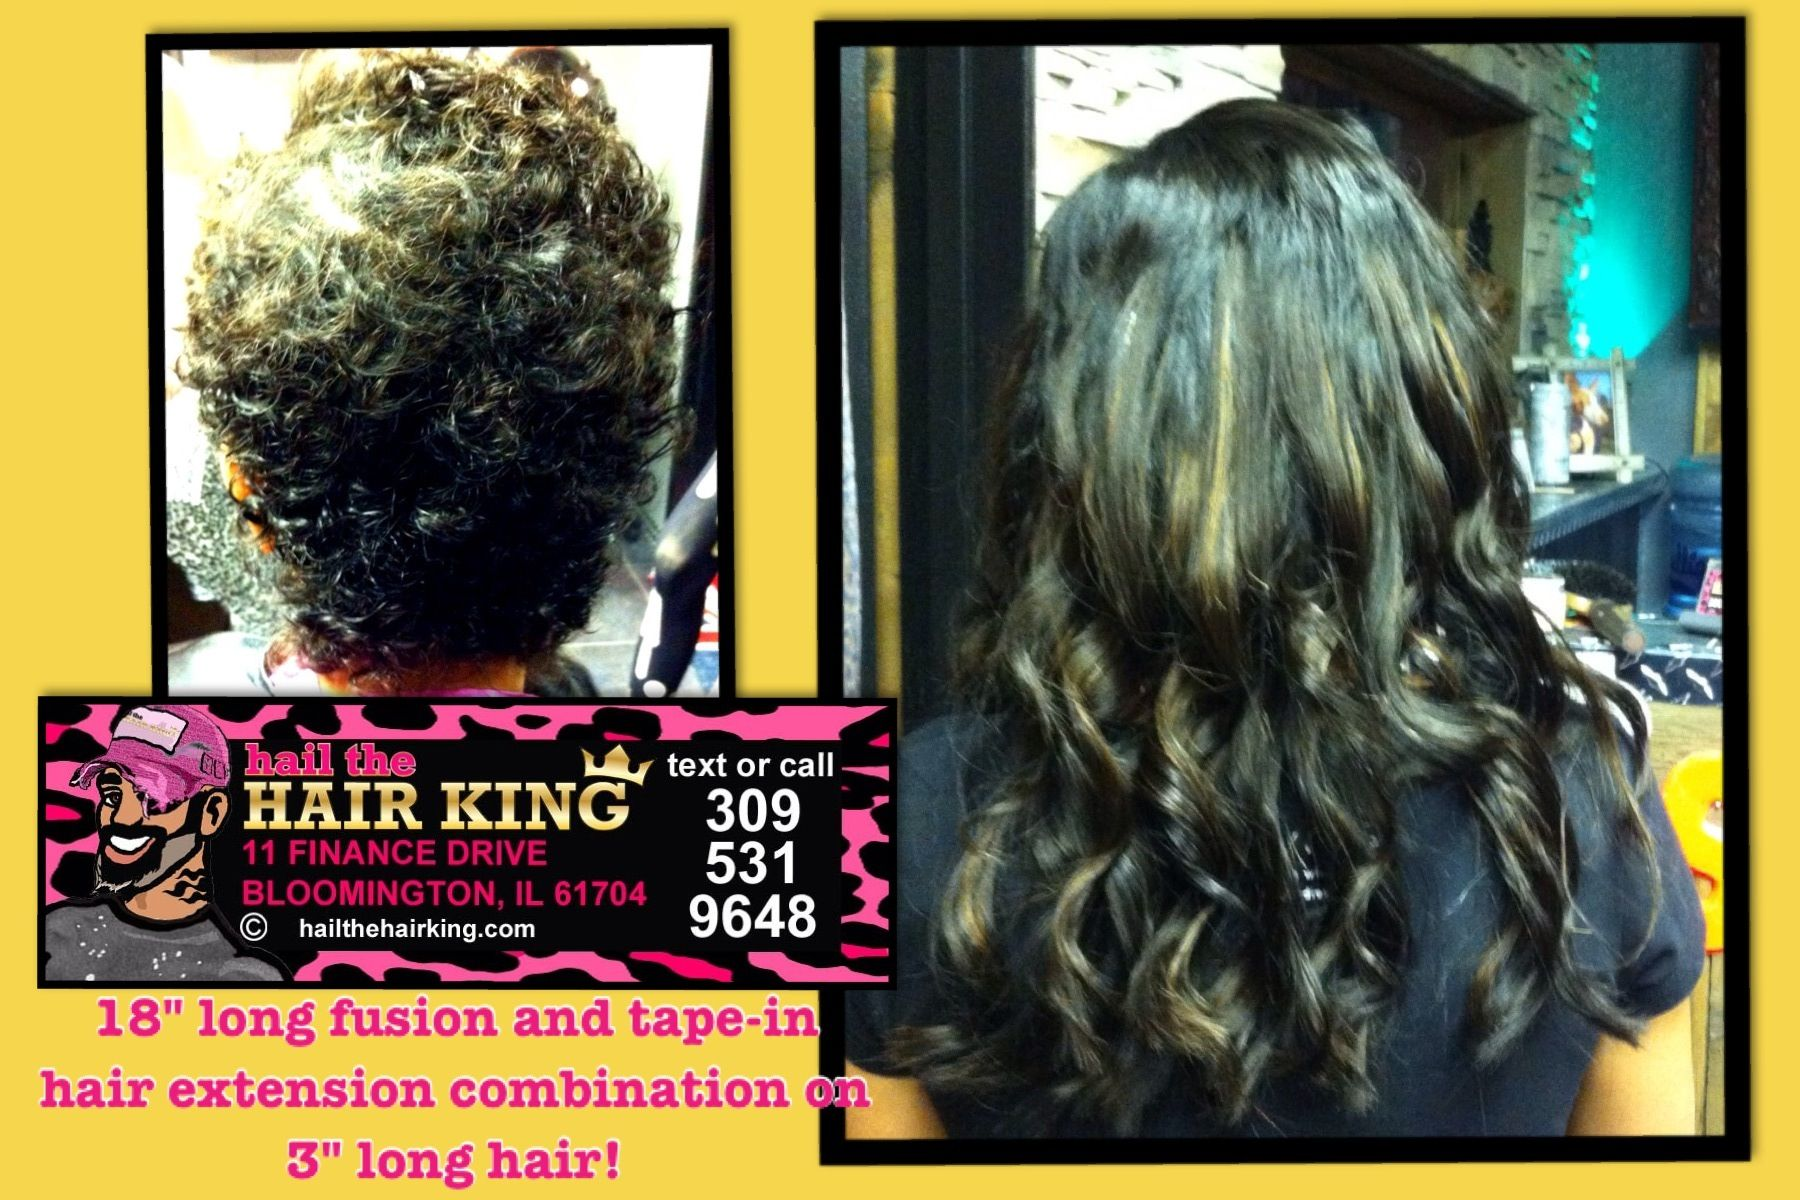 From 3 To 18 Fusion And Tape In Extension Combination By Travis